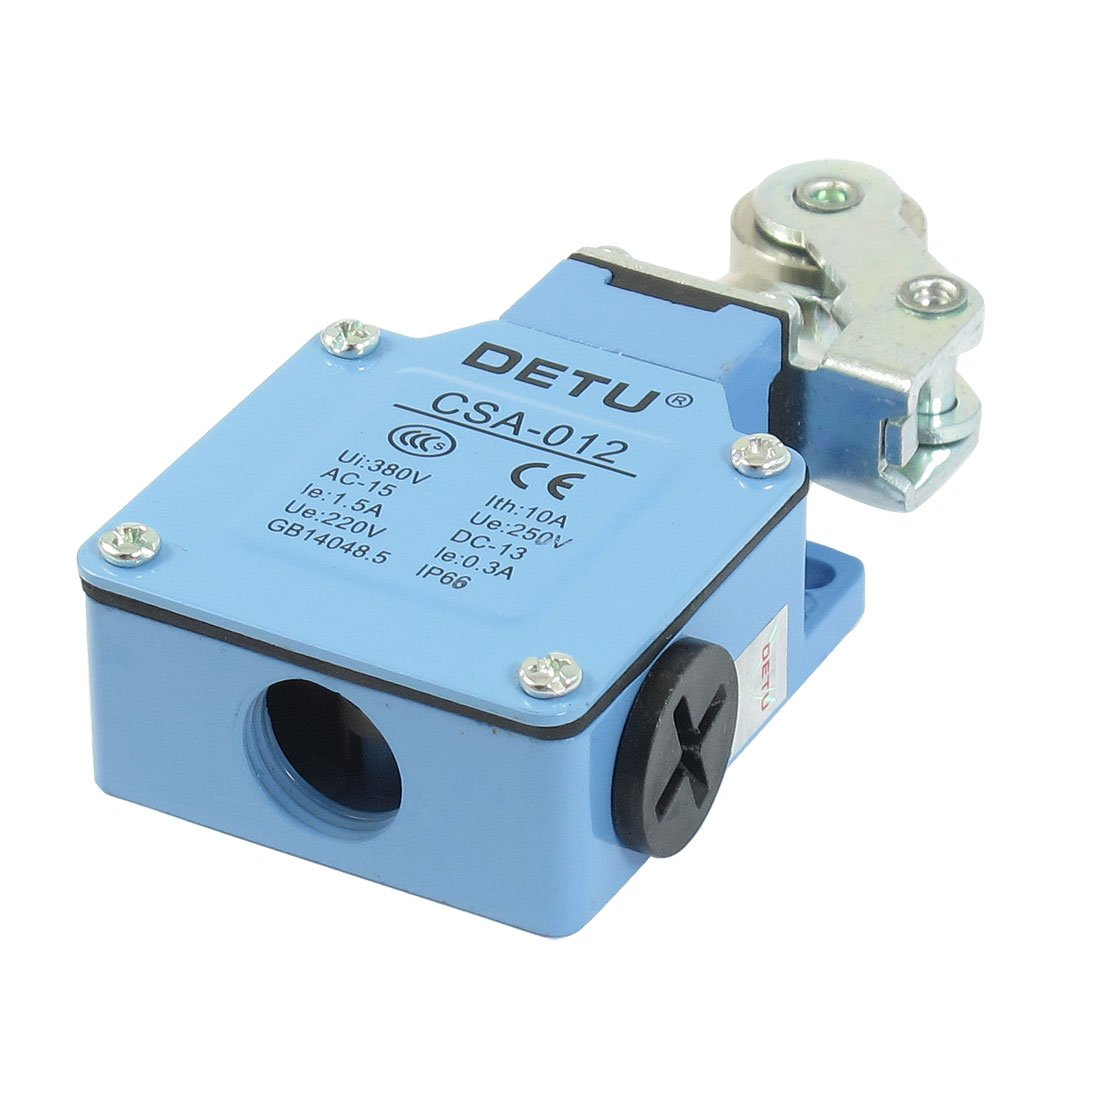 CSA-012 AC 250V 1.5A DC 220V 0.3A Momentary Roller Lever Actuator Limit Switch limit switches limit sw